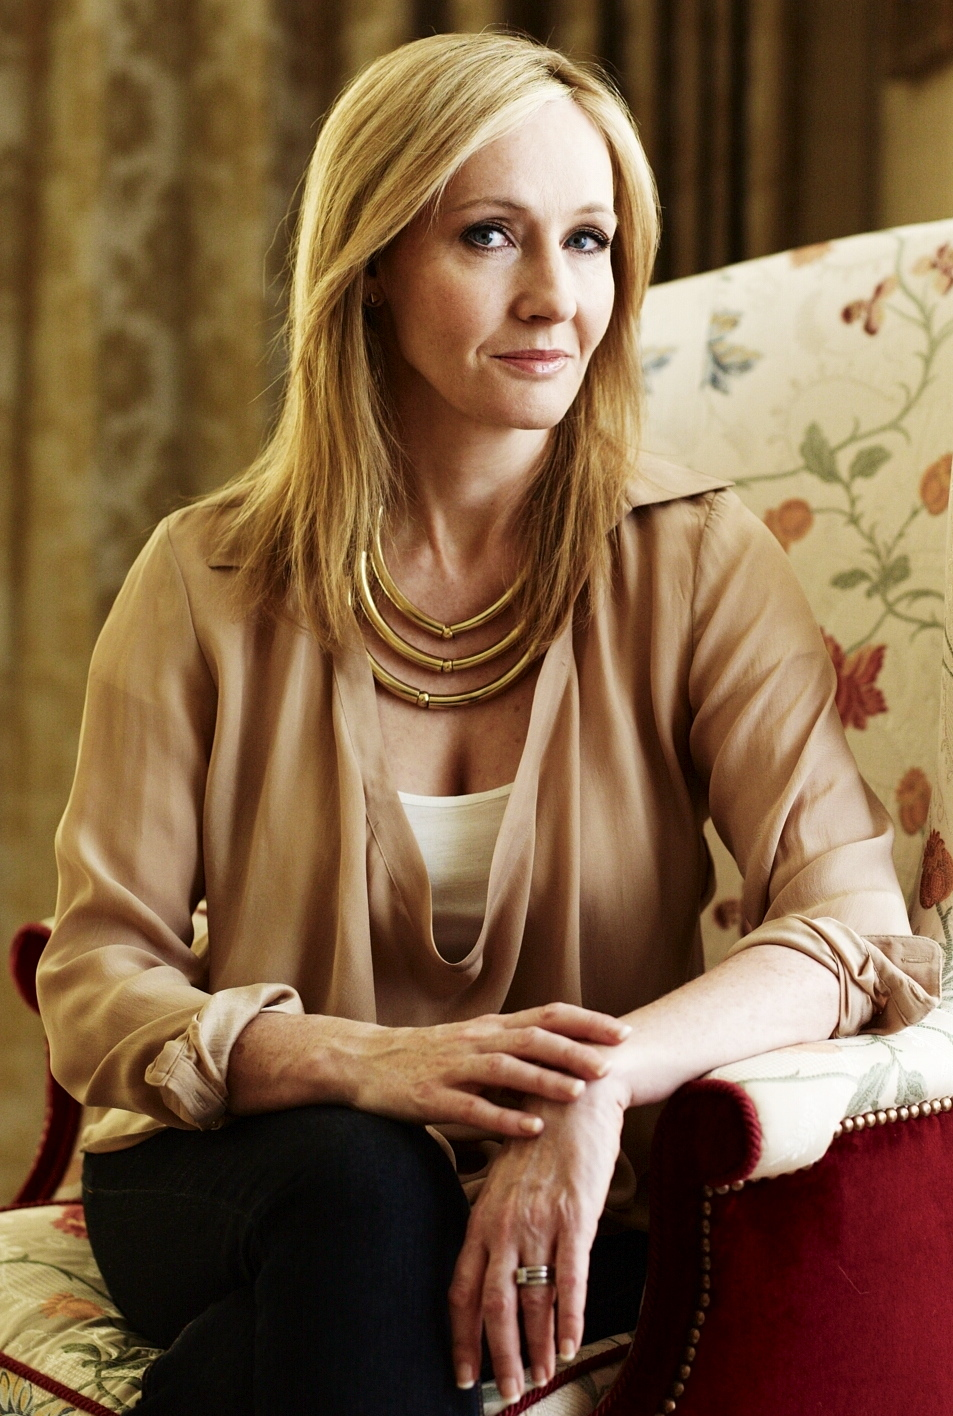 """an examination of the famous novel harry potter series by jk rowling Nearly seven years after publishing the final book in the harry potter series, jk rowling has given fans an update on writes that his """"famous ginger hair."""